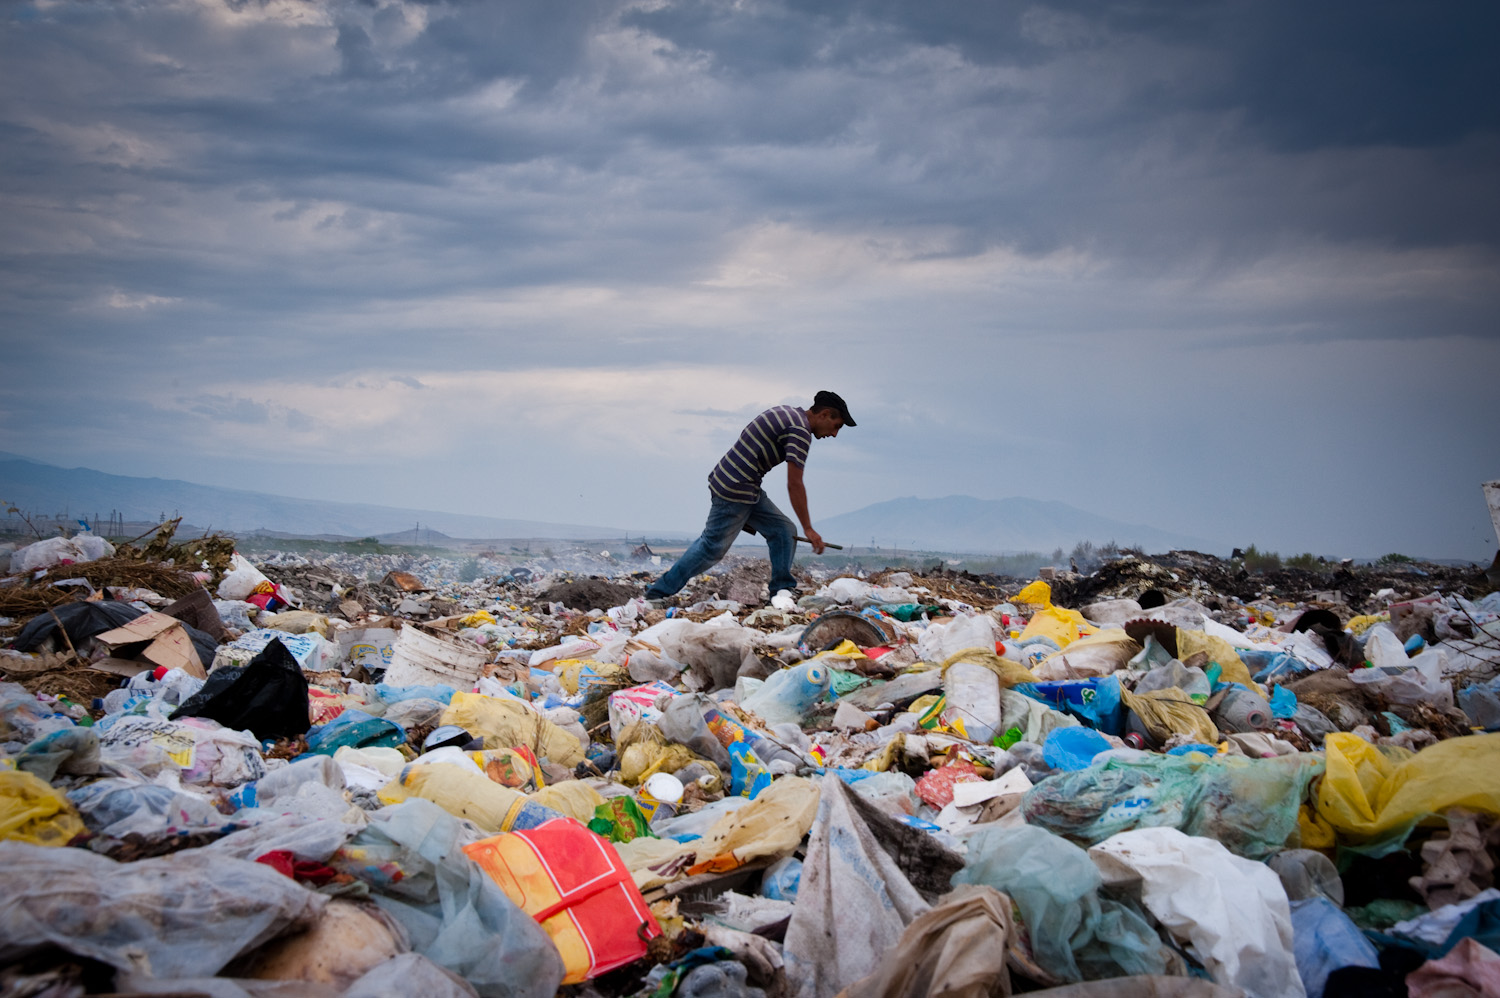 Grigor supports his wife and three children by rummaging daily in this garbage dump near Etchmiatzin for items to sell or to burn for fuel.